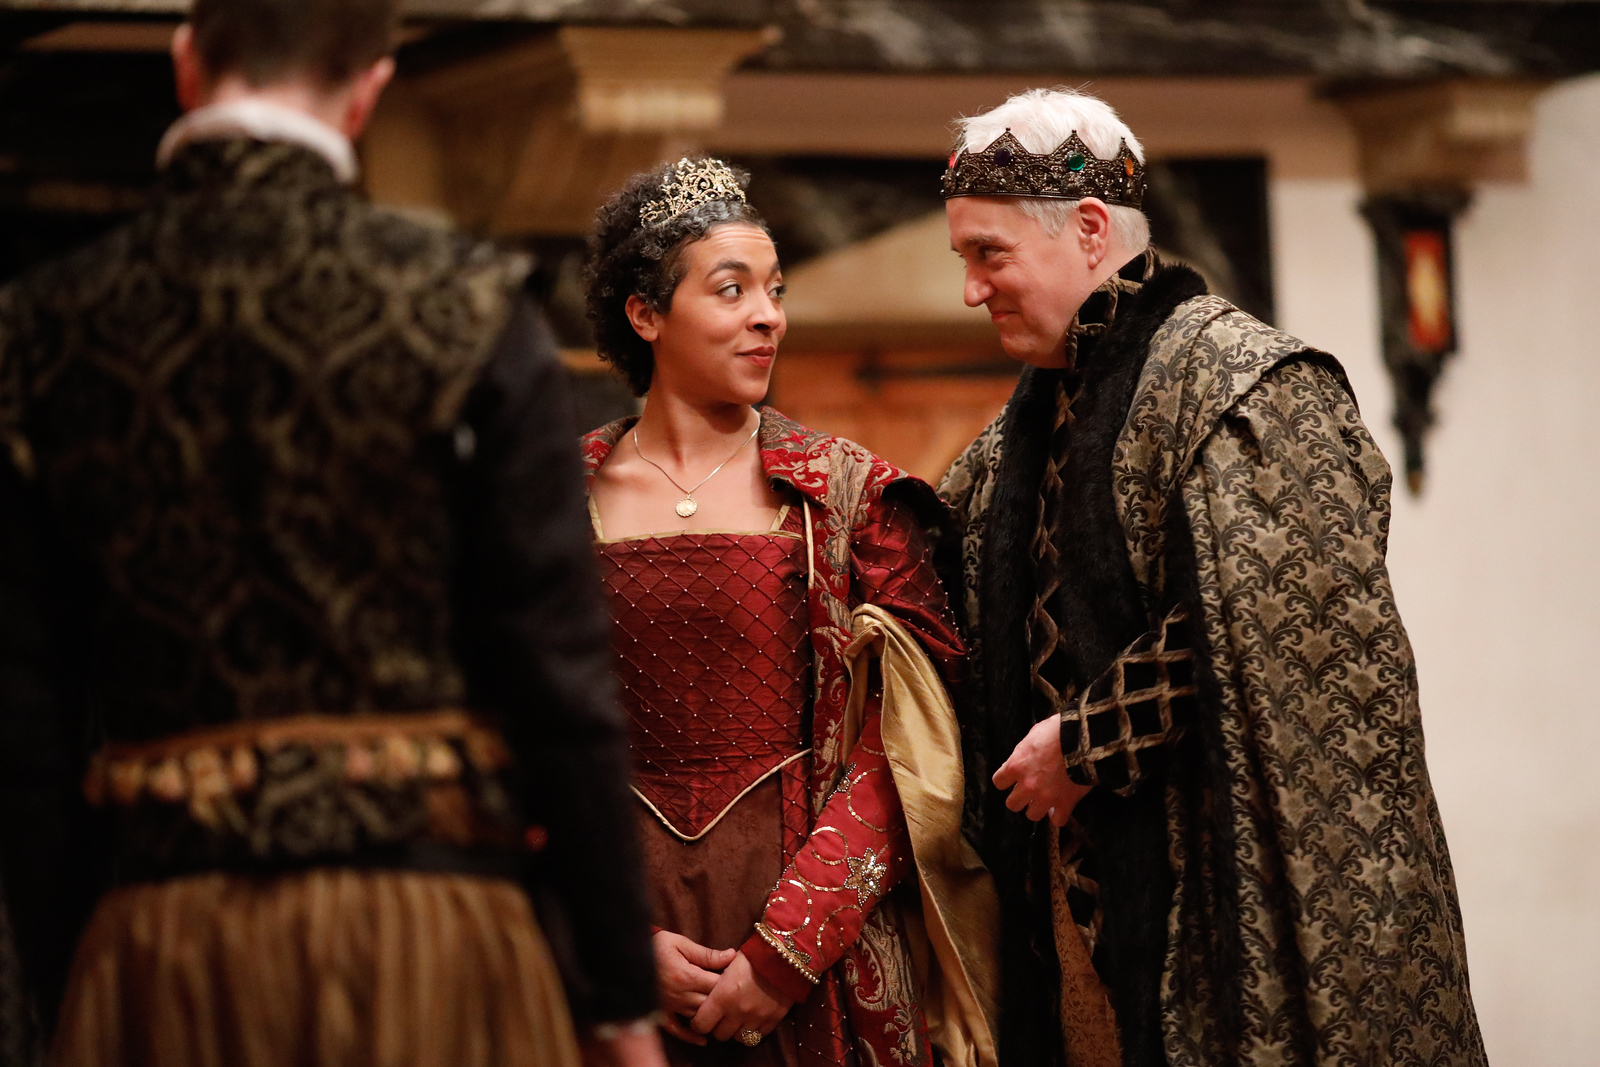 Jessika Williams as Gertrude and Christopher Seiler as Claudius in HAMLET.  Photo by Lindsey Walters.